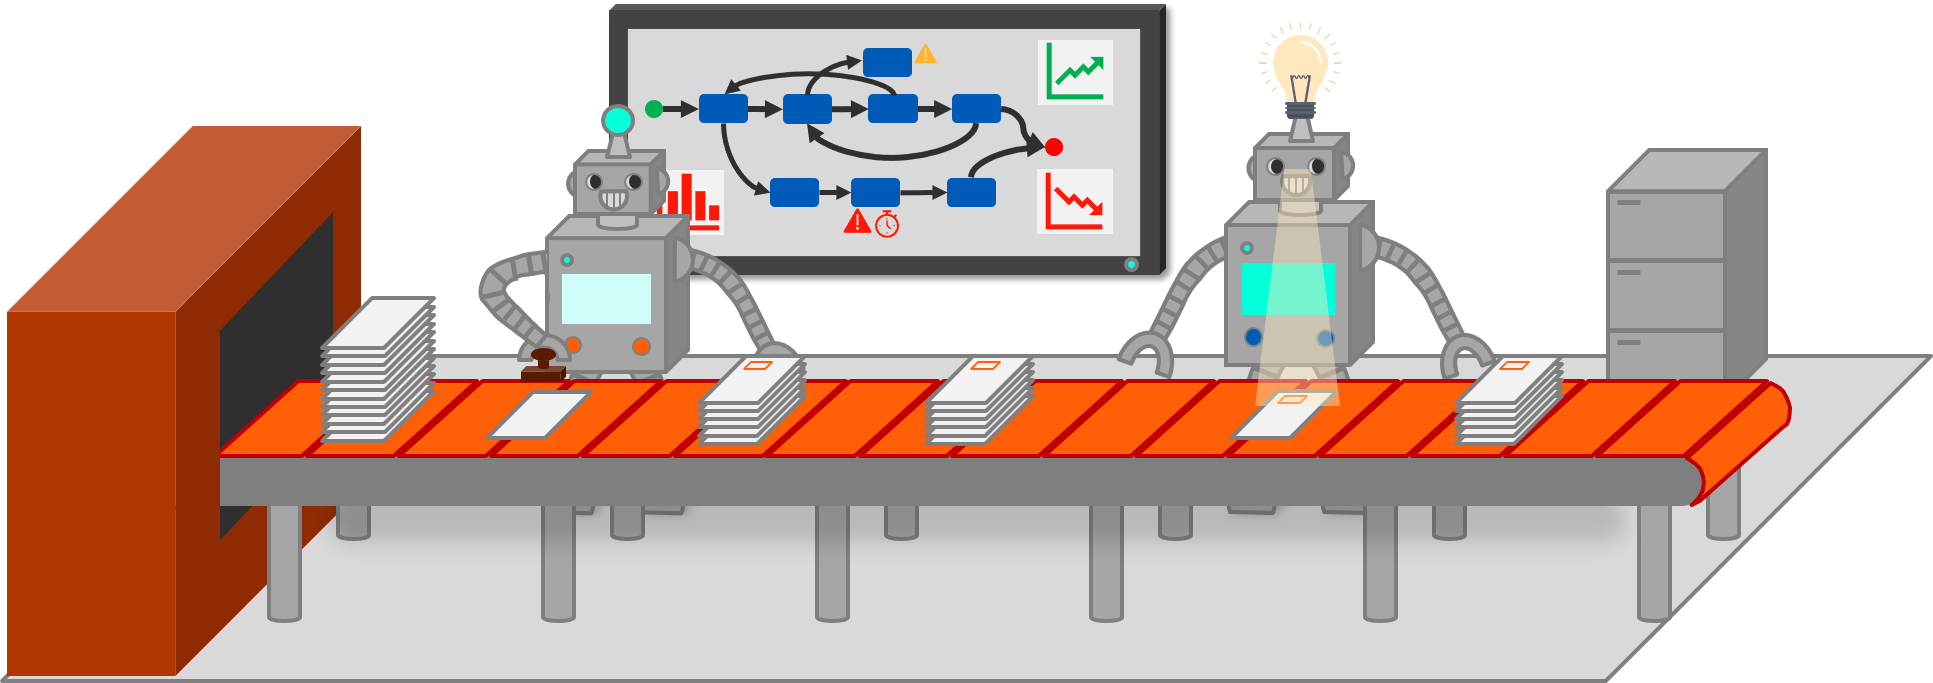 Assembly Line Robots.png